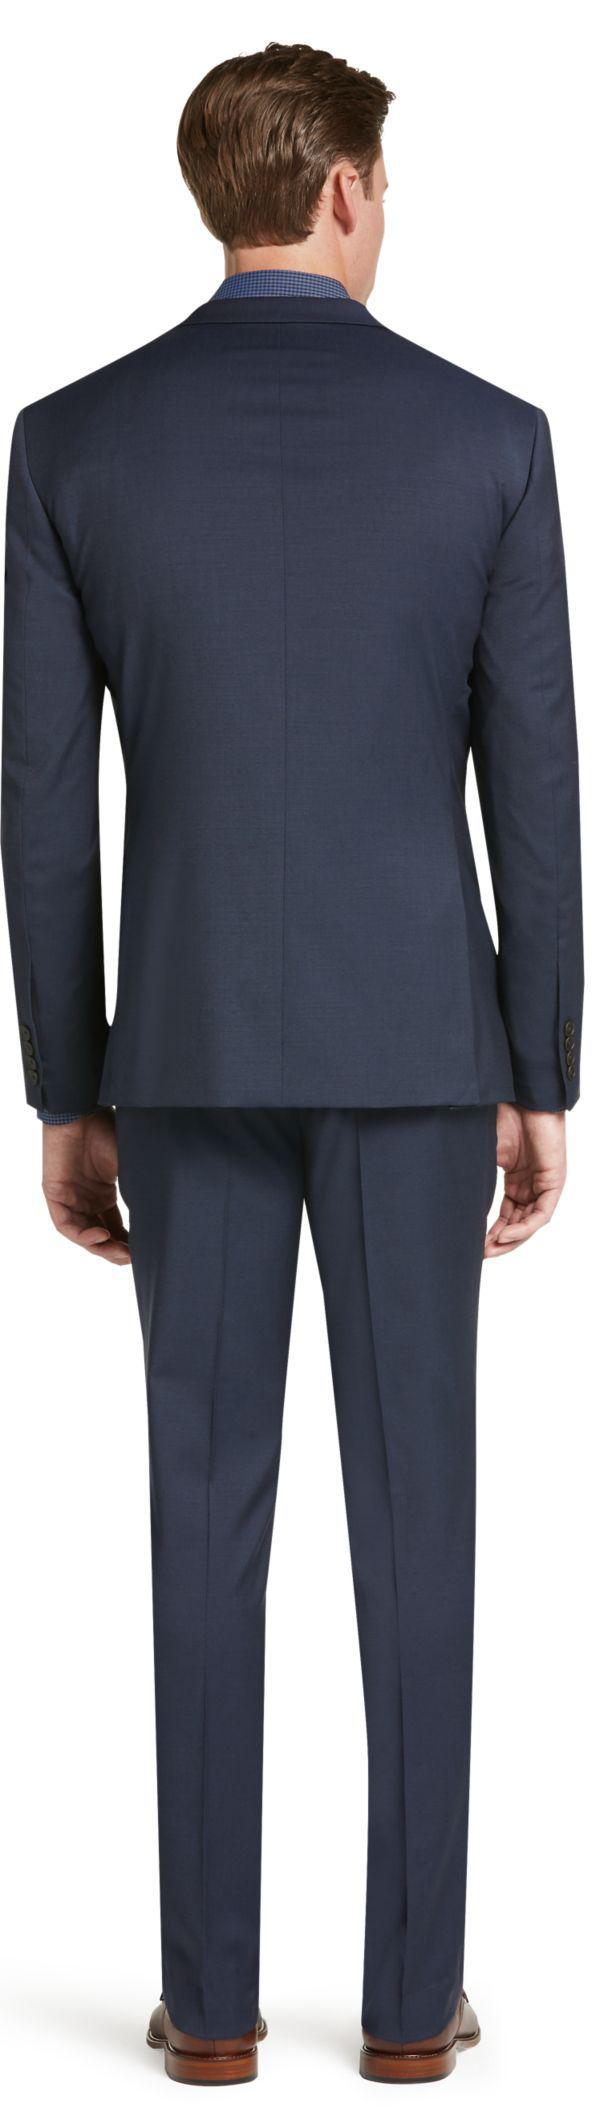 Jos A Bank Travel Tech Slim Fit Suit Separate Jacket In Blue For Men Lyst